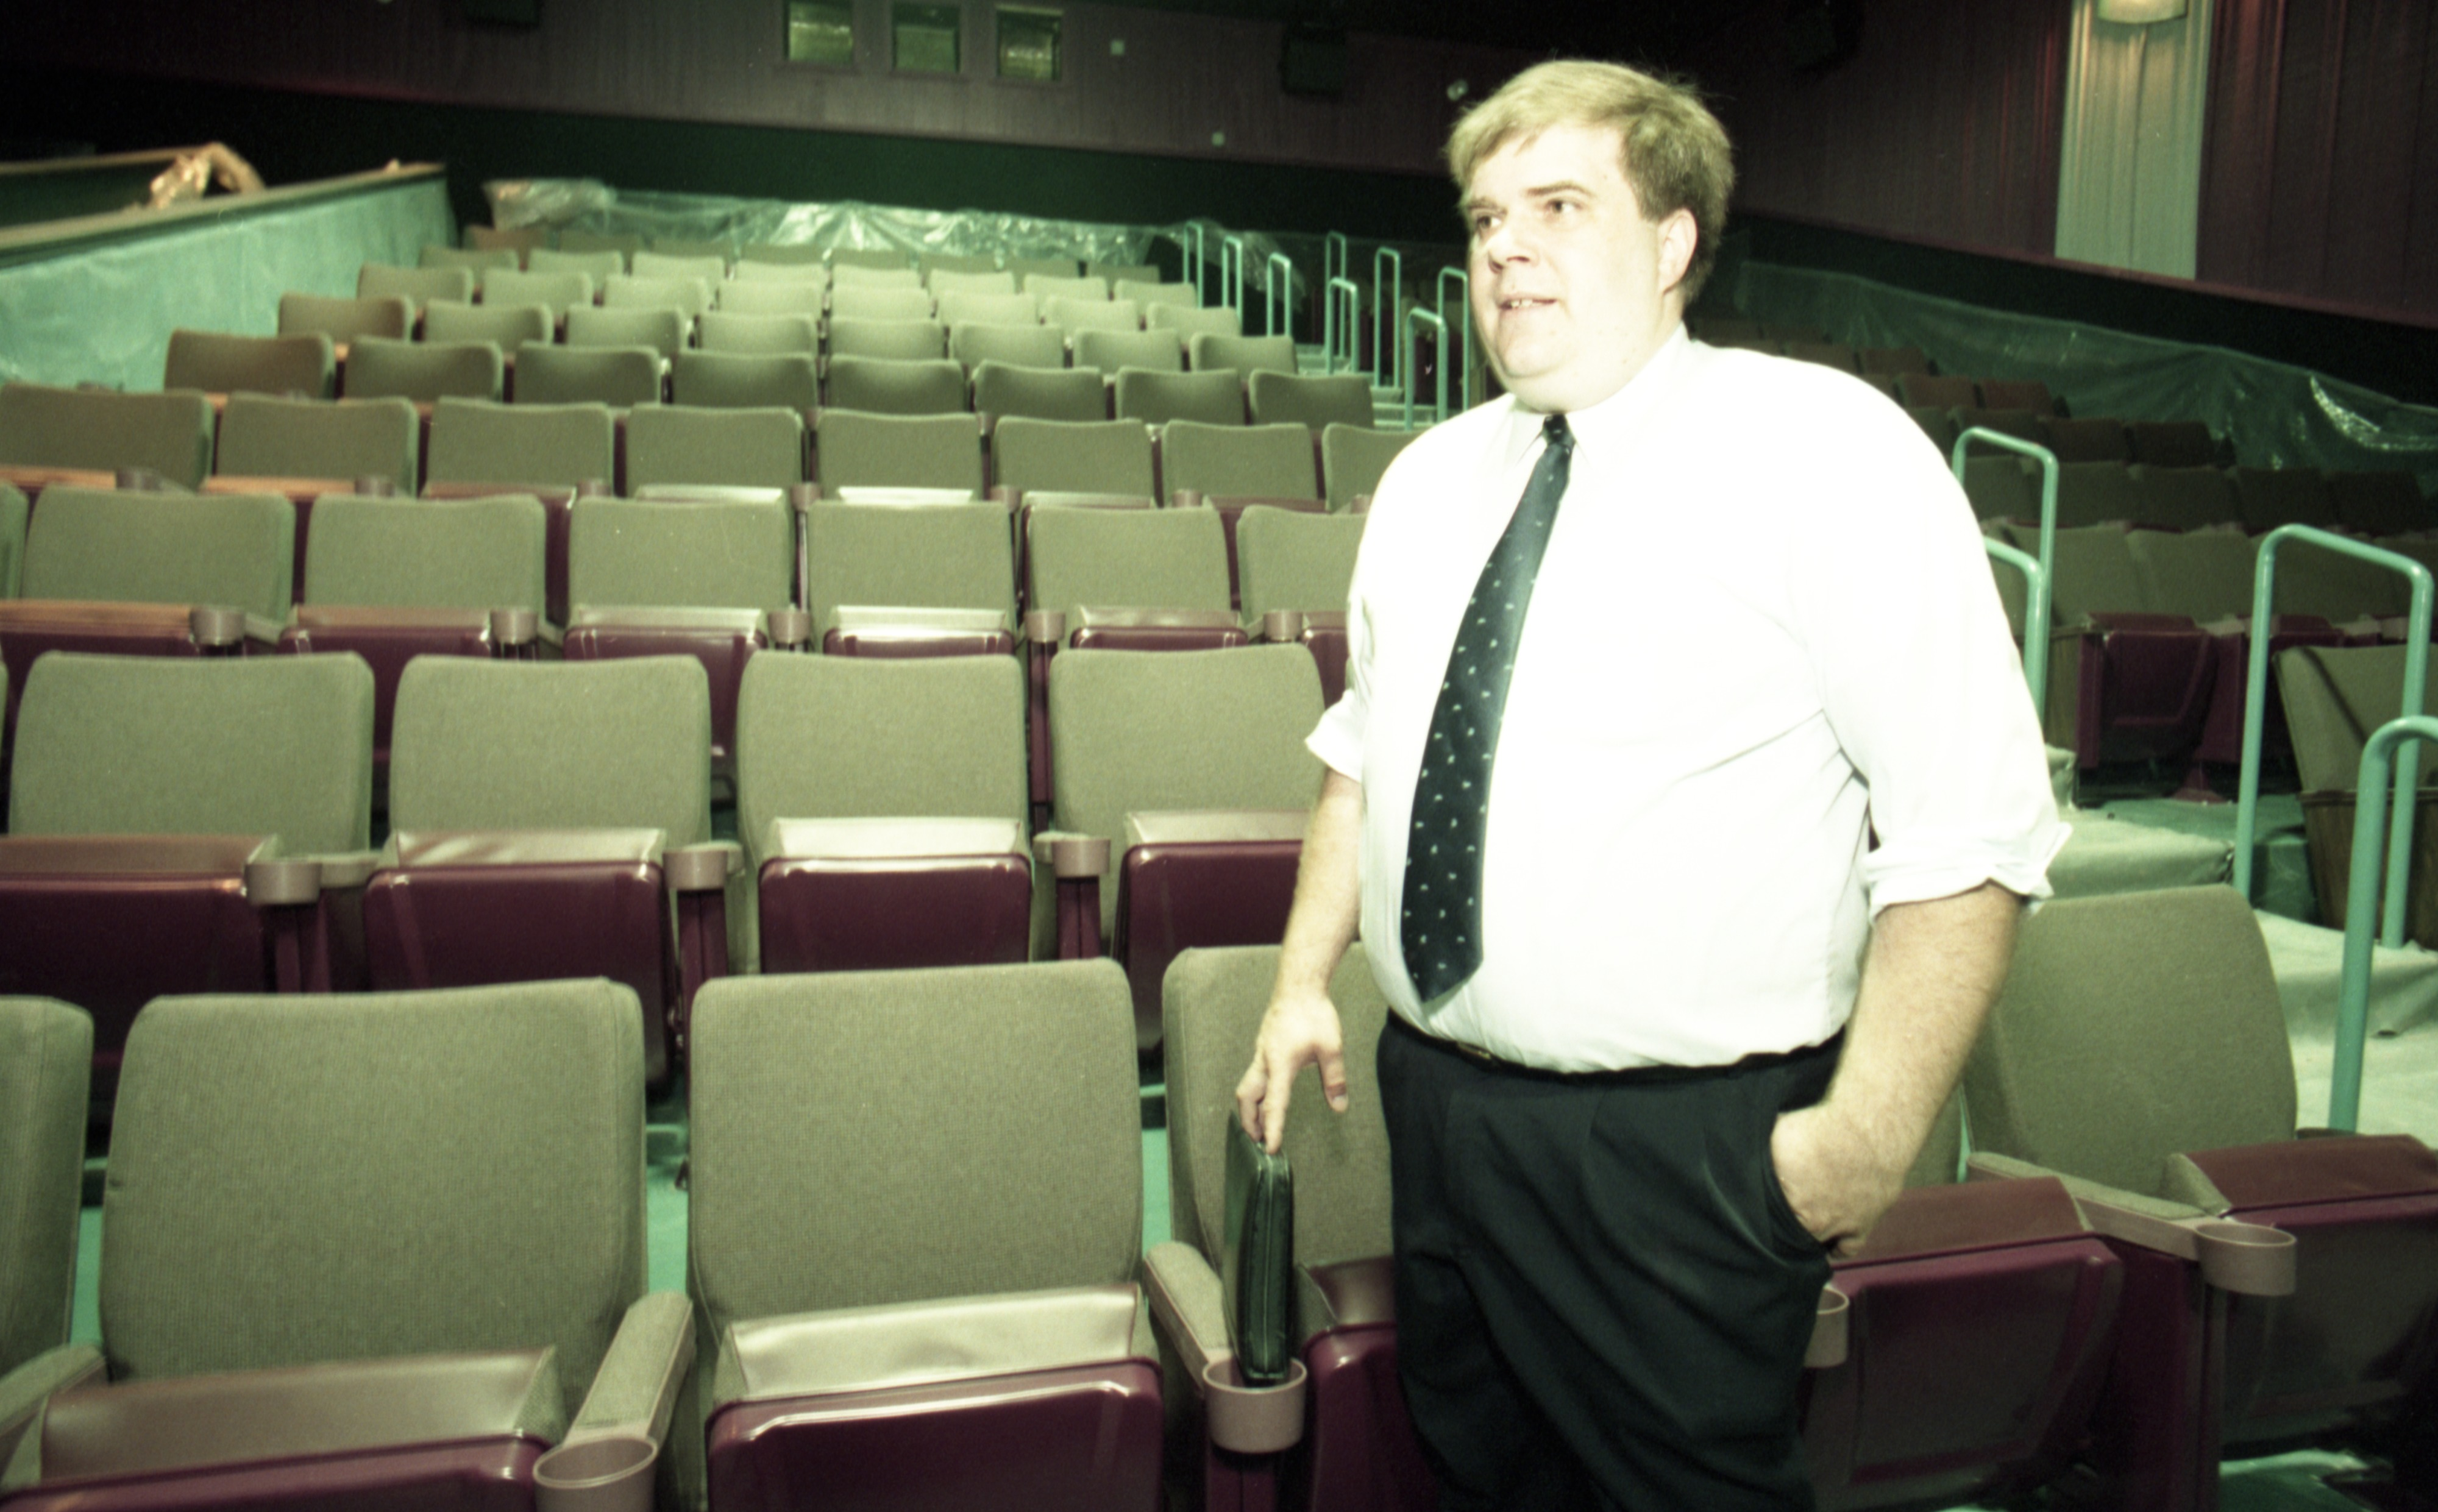 Goodrich Theaters' Quality 16 Cinemas, Manager Brad Miller, July 1999 image